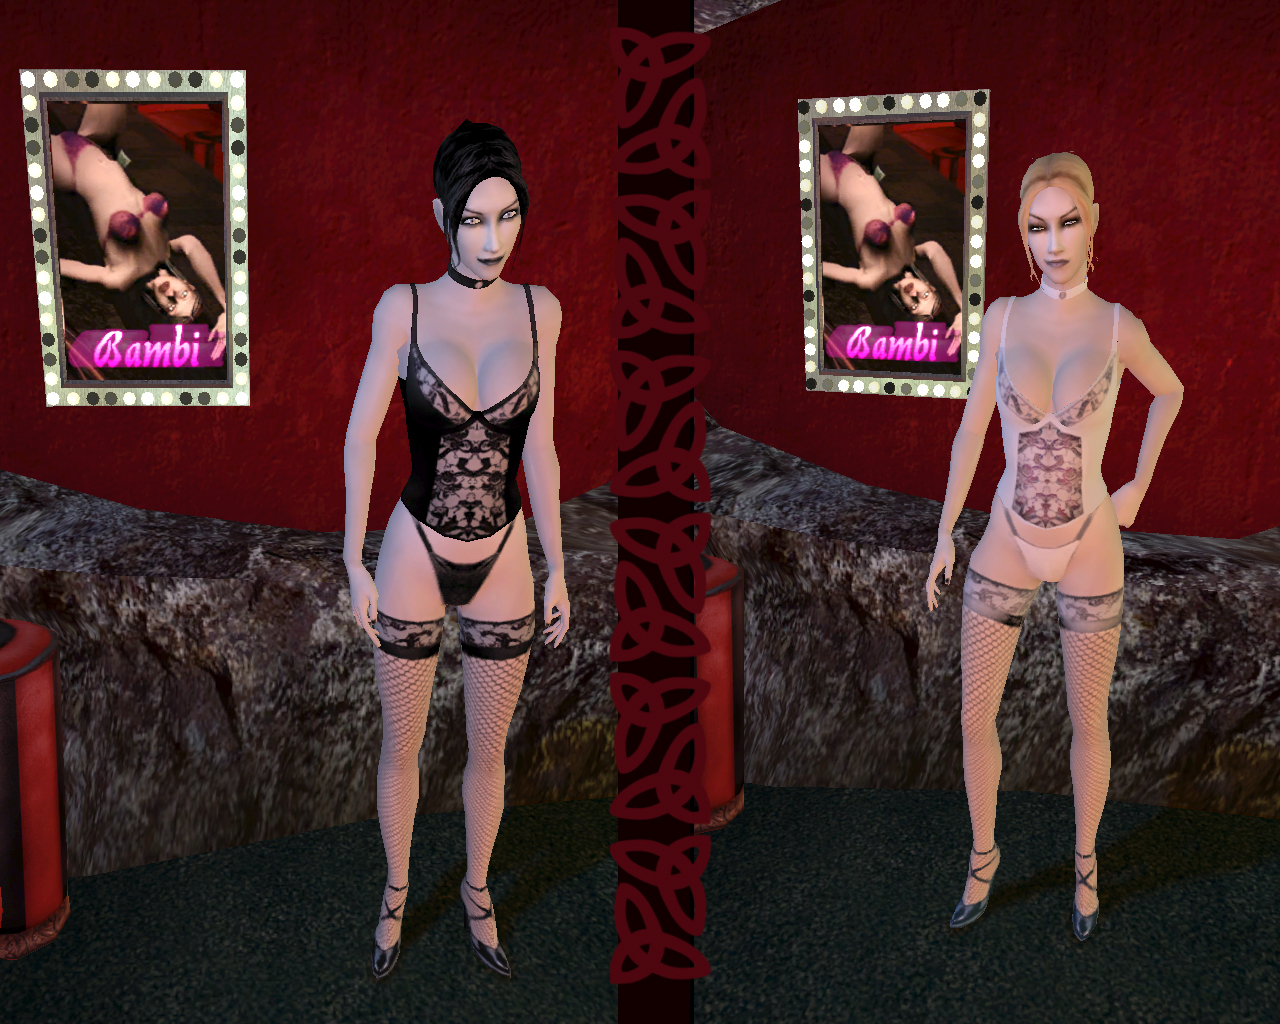 Vampire bloodlines nude mods pics exposed photo